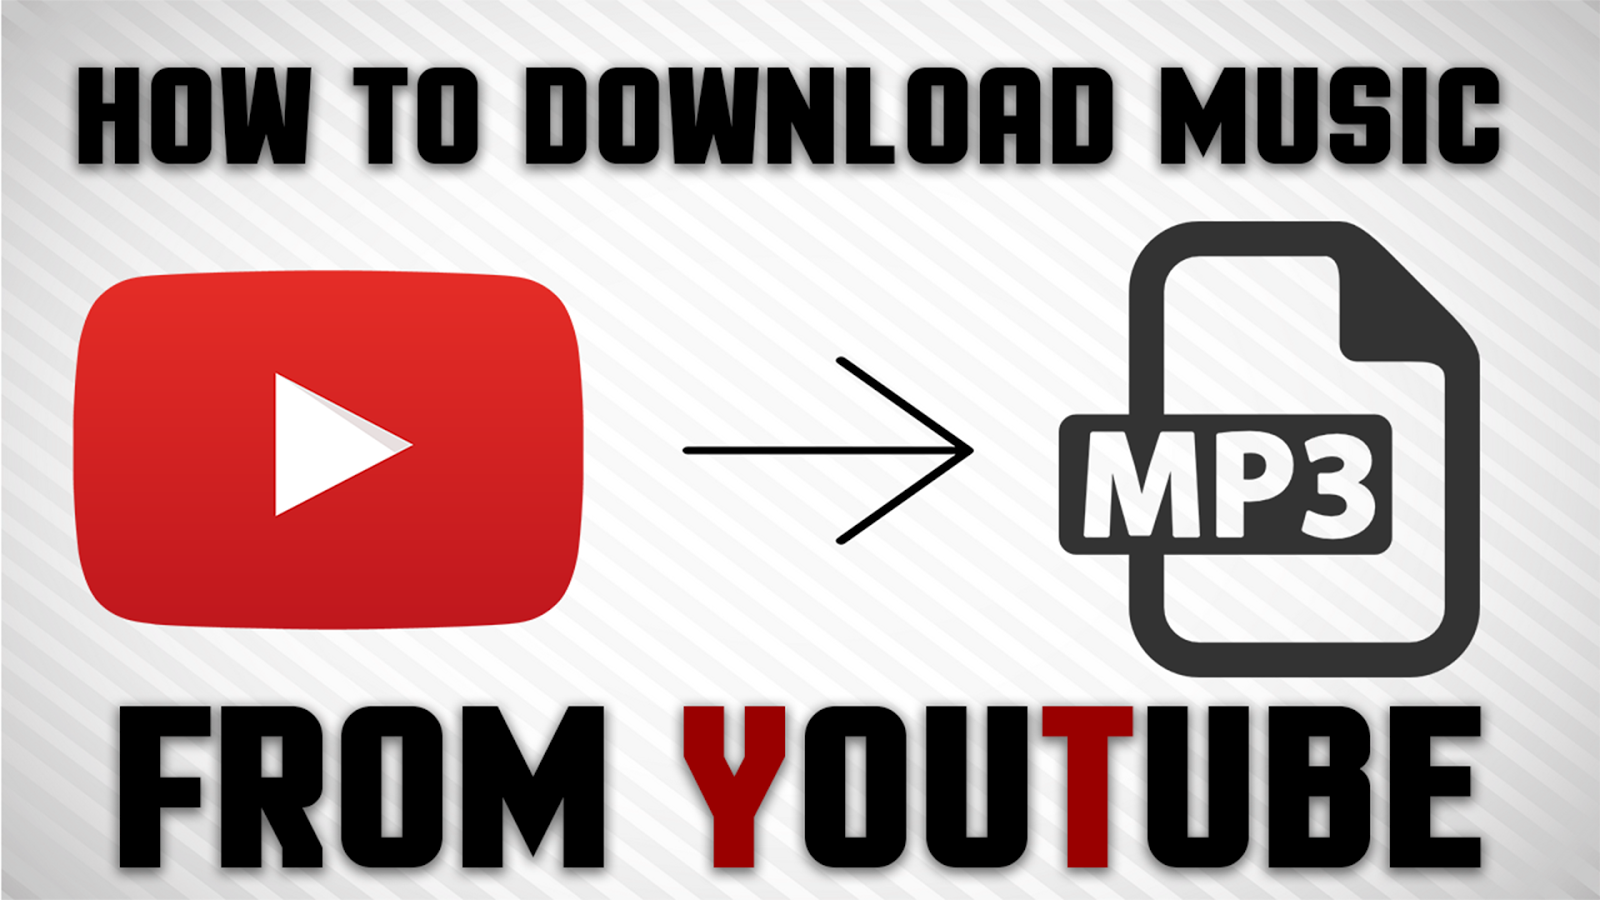 How to download music to a usb stick from YouTube - YouTube